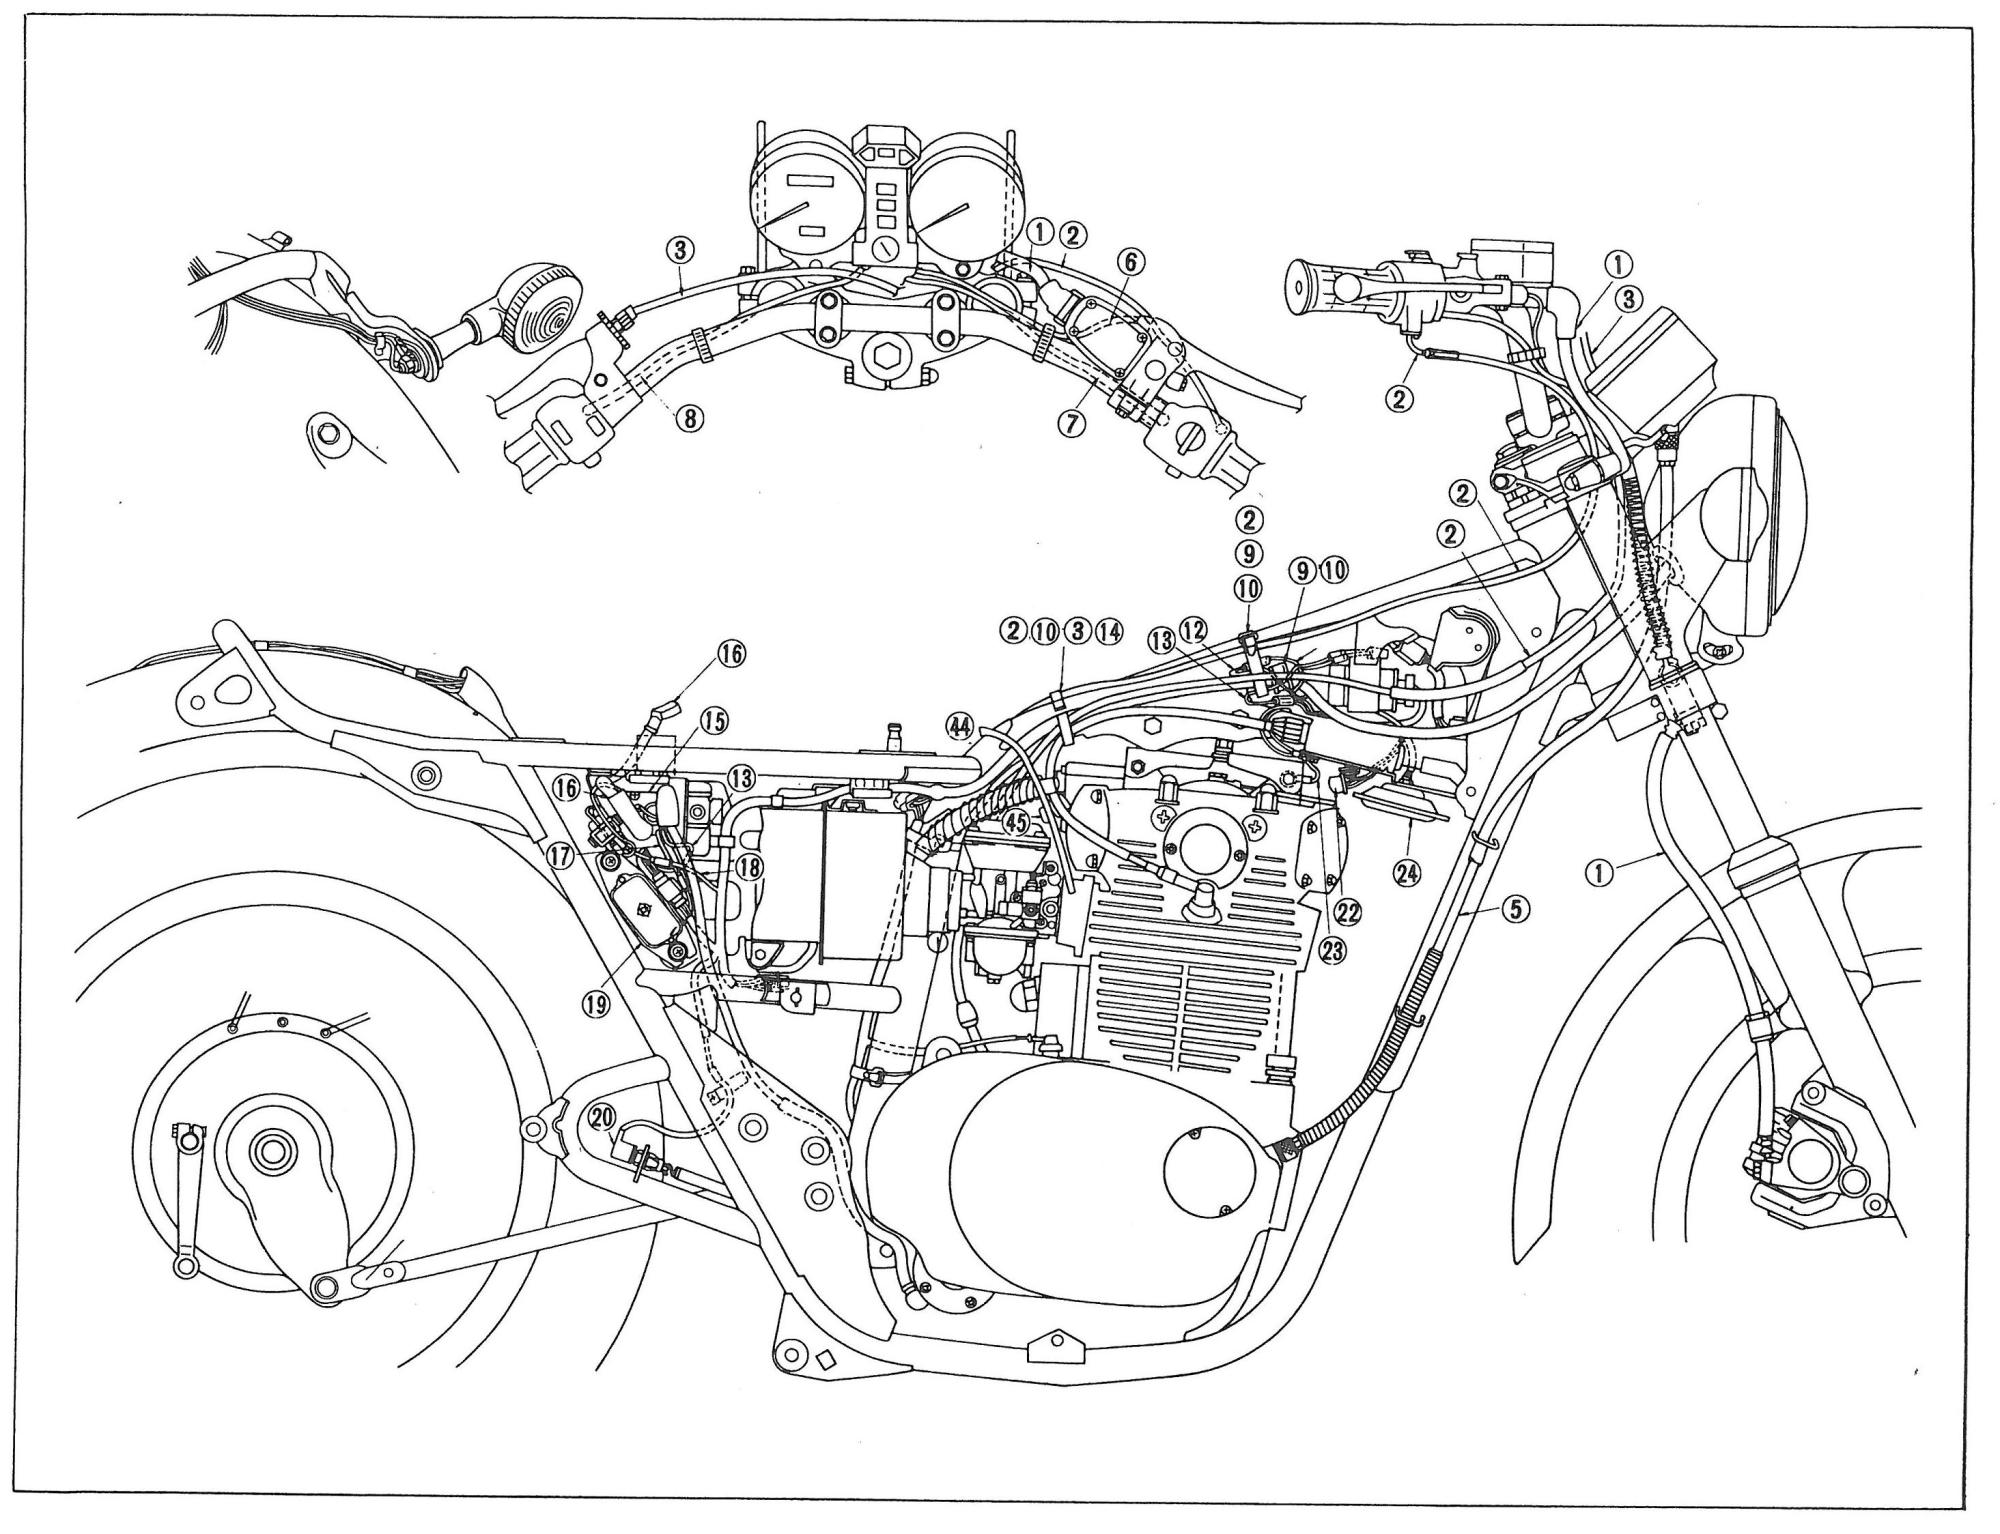 hight resolution of 1979 yamaha xs650 wiring diagram schematics wiring diagrams u2022 rh parntesis co 1975 yamaha xs650 wiring